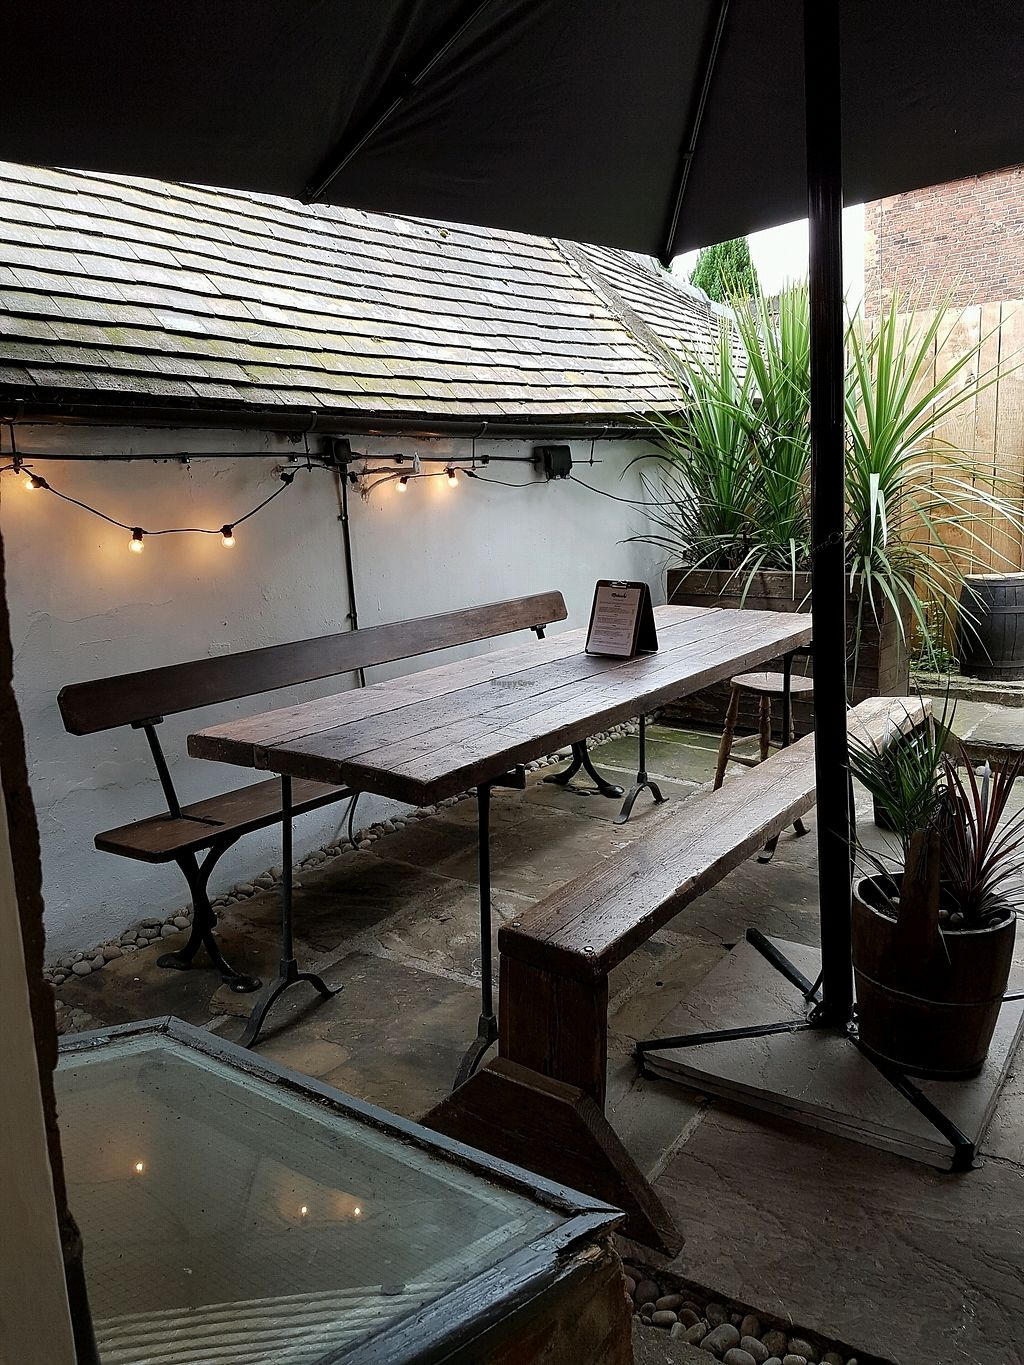 """Photo of Basecamp Coffee  by <a href=""""/members/profile/NannyCathMilnes"""">NannyCathMilnes</a> <br/>roof terrace <br/> August 29, 2017  - <a href='/contact/abuse/image/83853/298550'>Report</a>"""